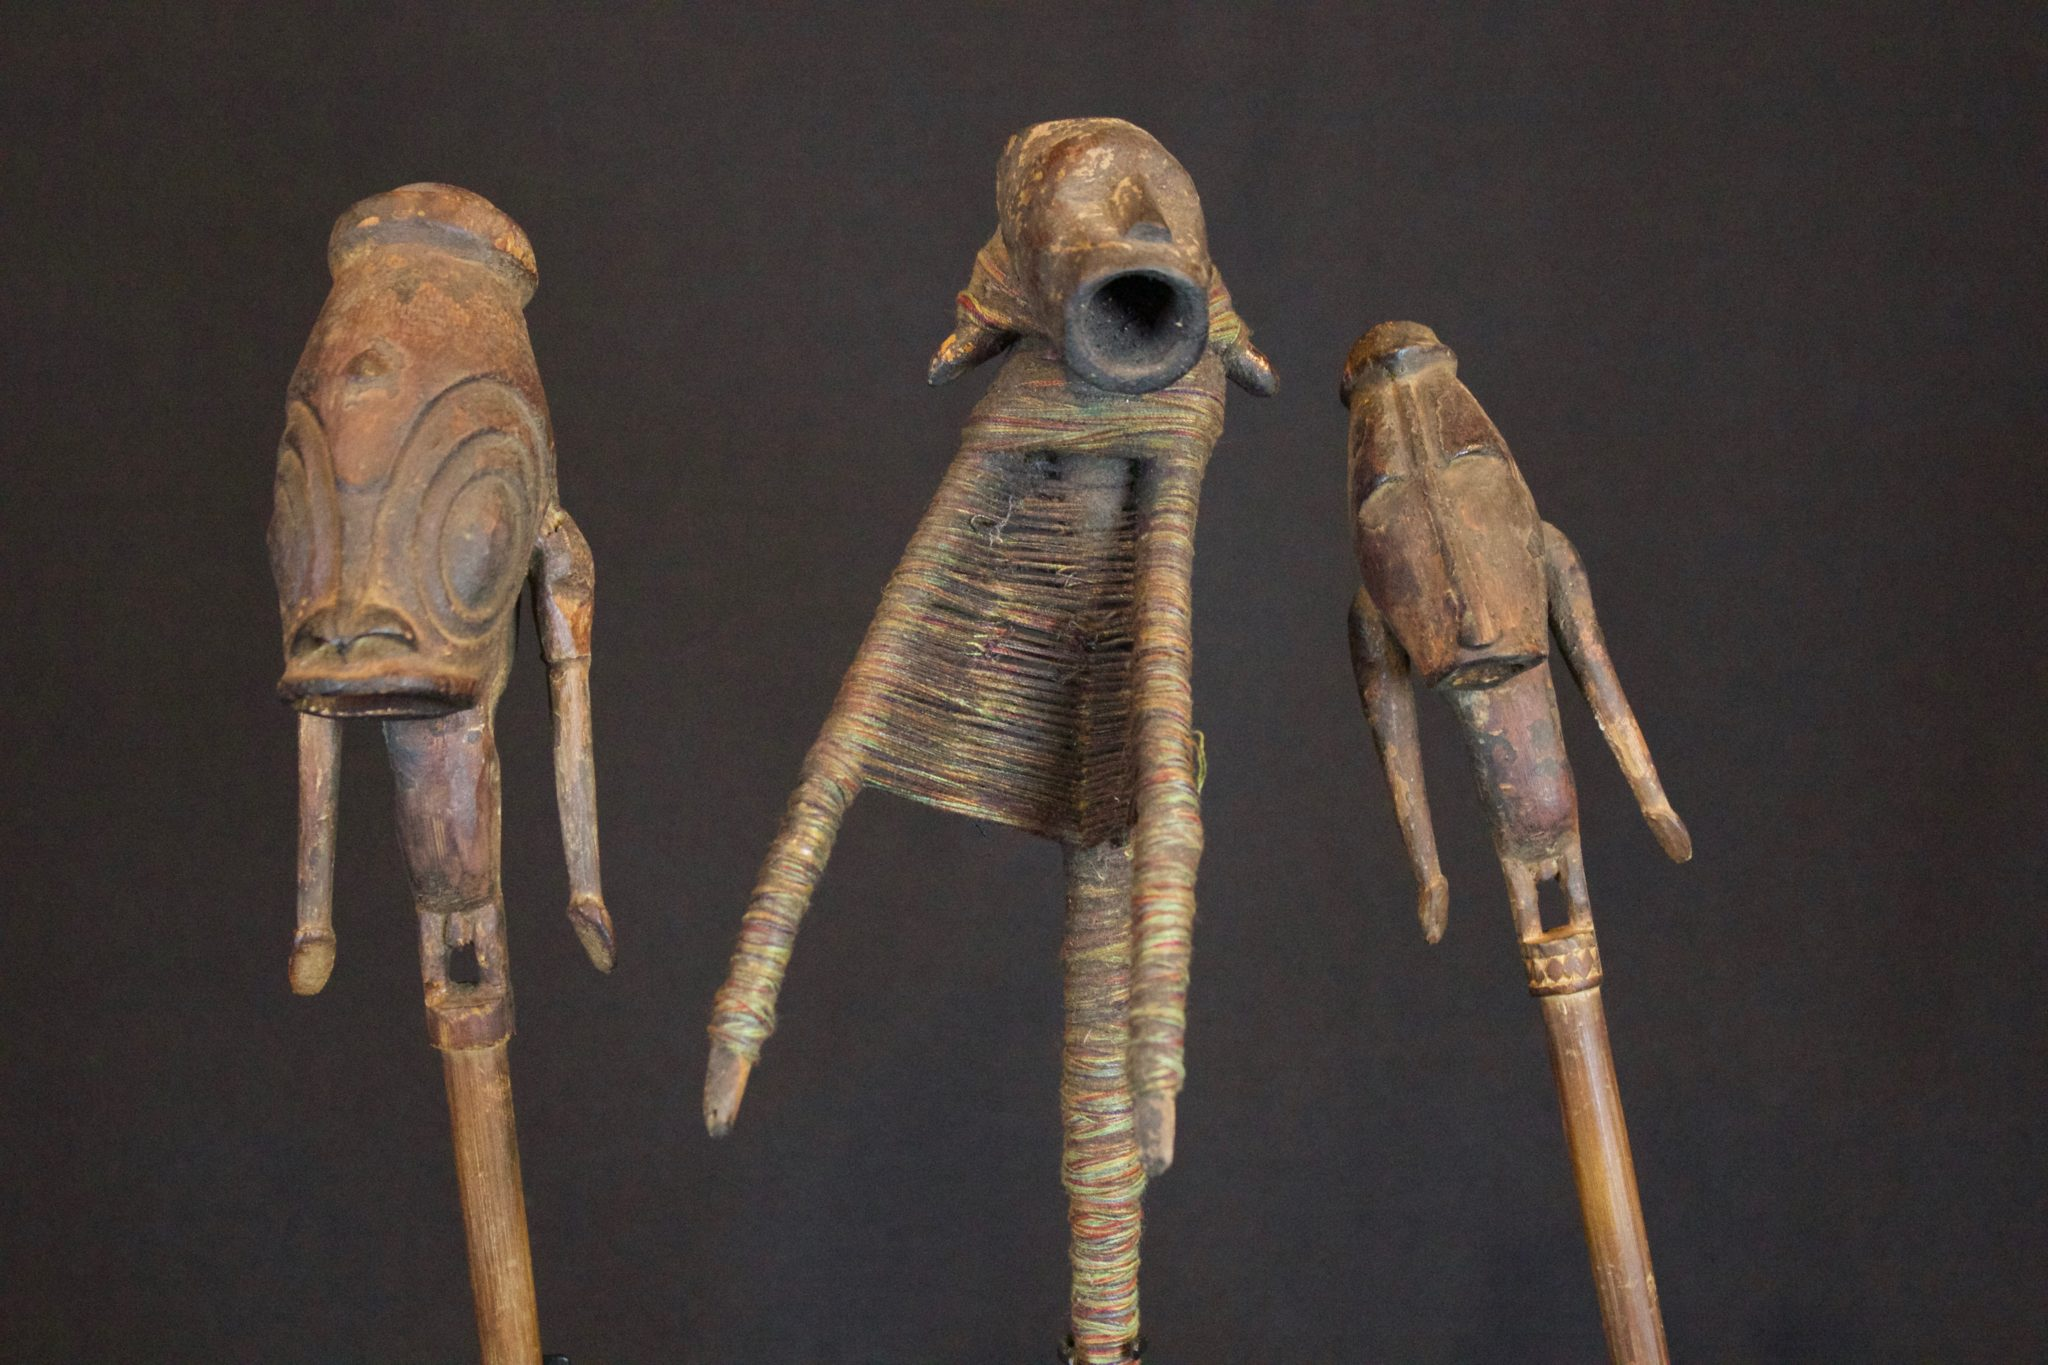 """Shaman Talisman Figure, Papúa New Guinea, Indonesia, Early 20th c, Wood. Used in ritual ceremonies to stop rain. (Figure on right - 12 ½"""" x 2"""" x 2 ½"""", Sold)"""